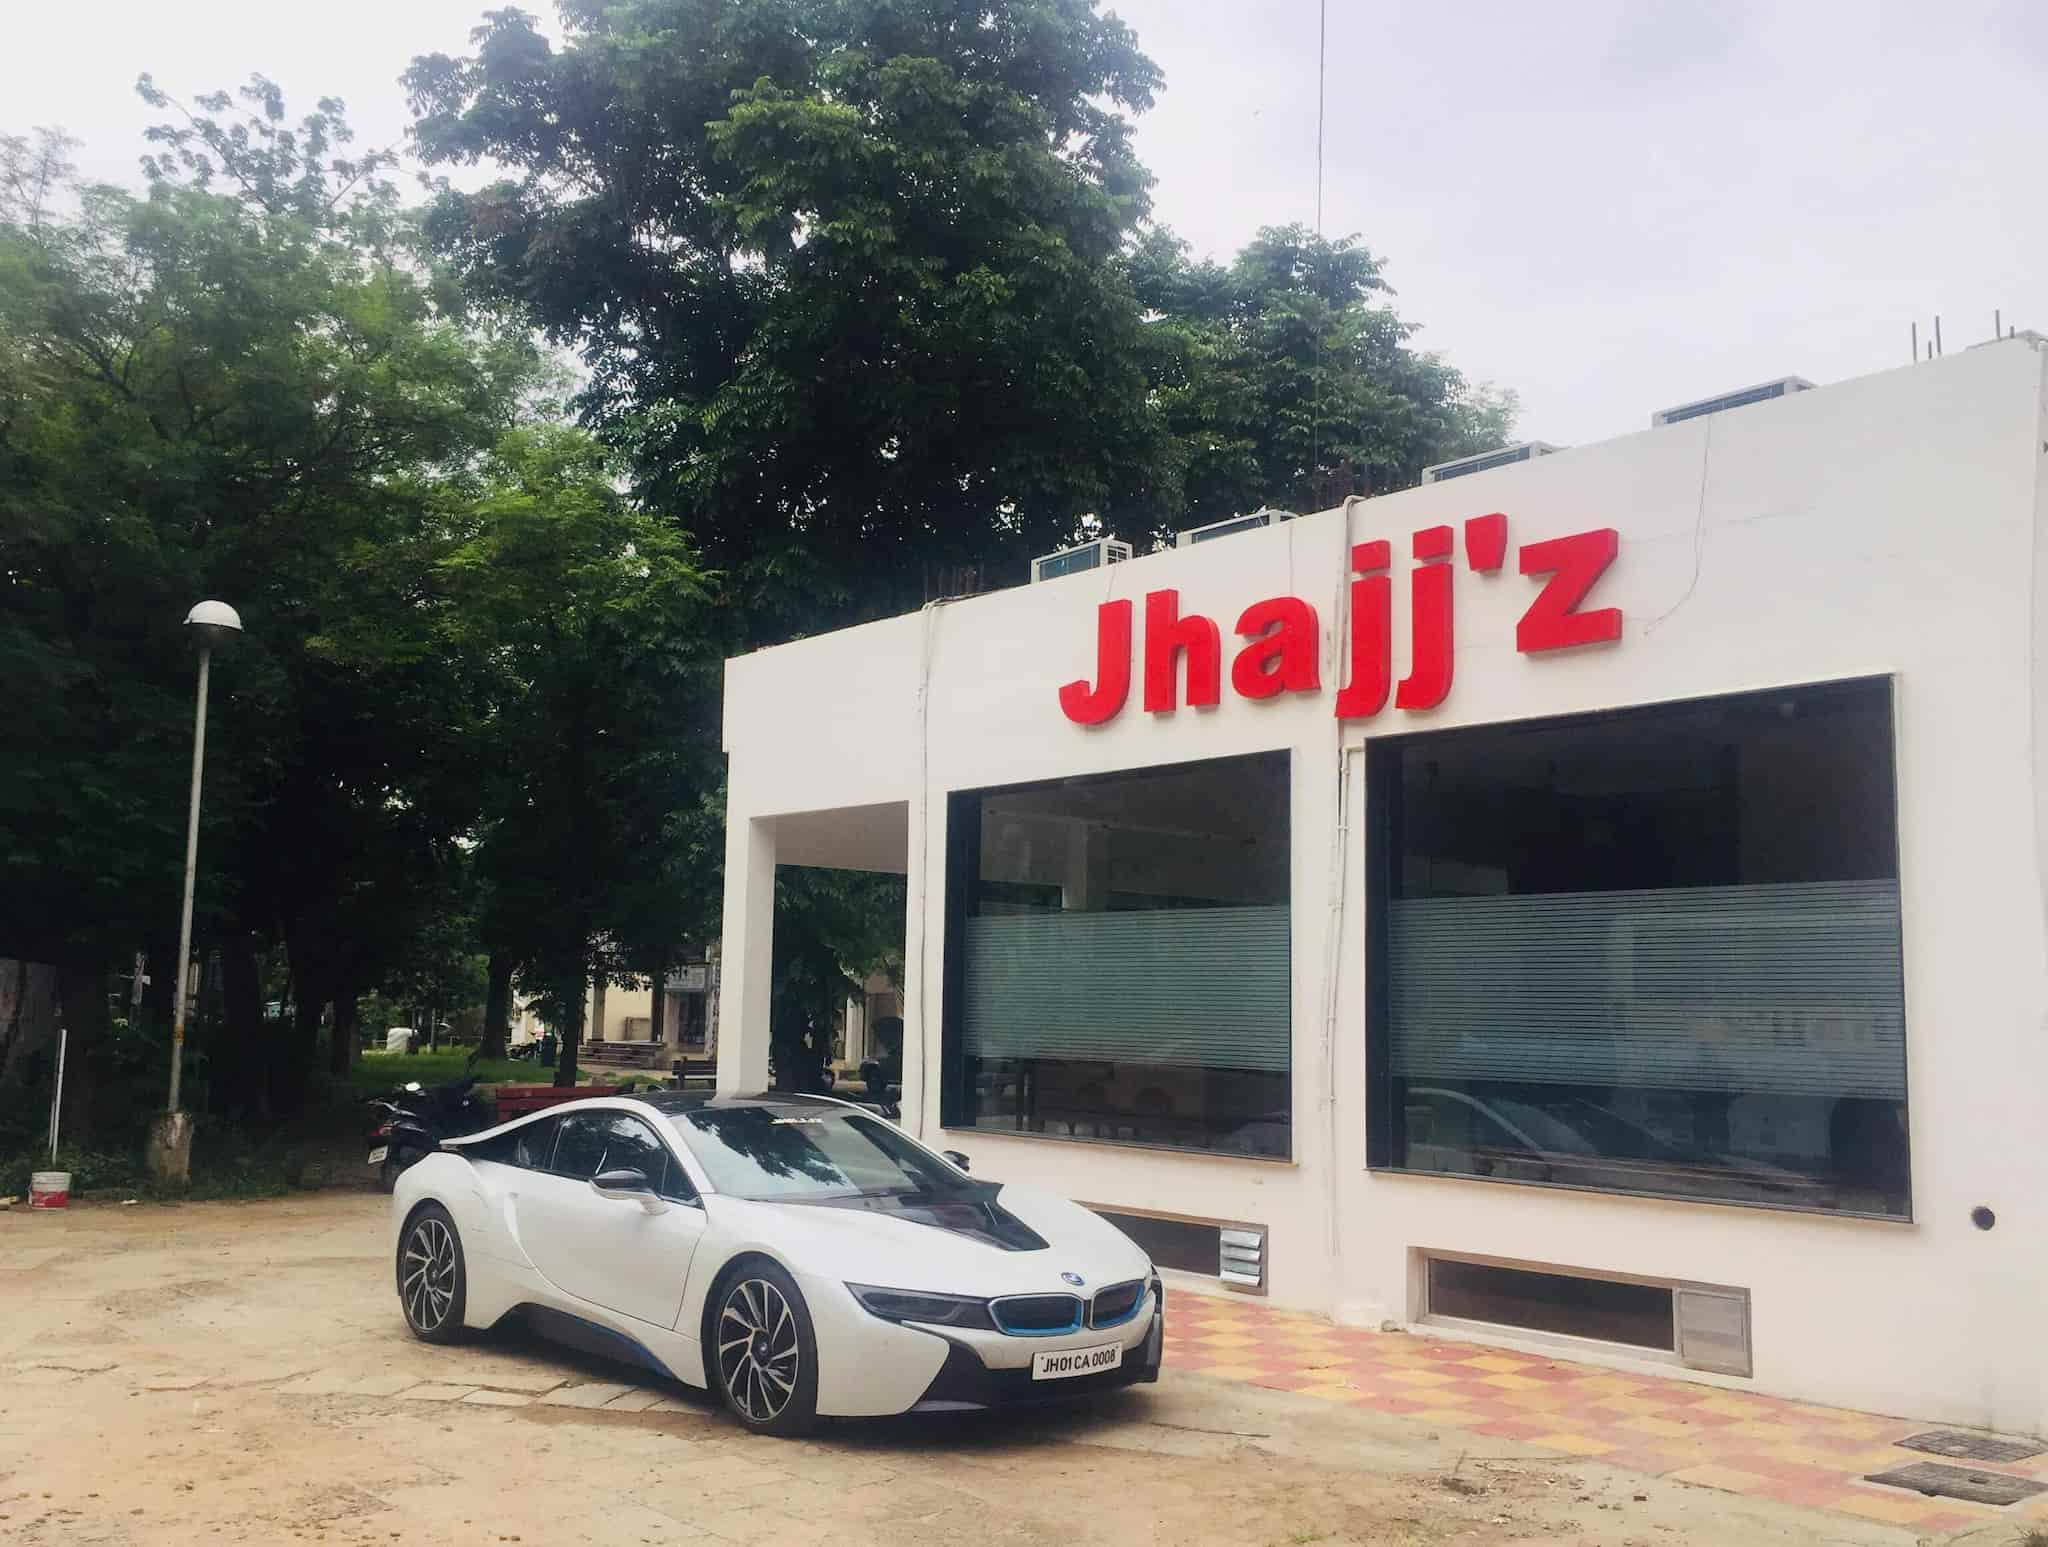 Jhajjz Car Rentals Sector 63 Phase 9 Car Hire In Chandigarh